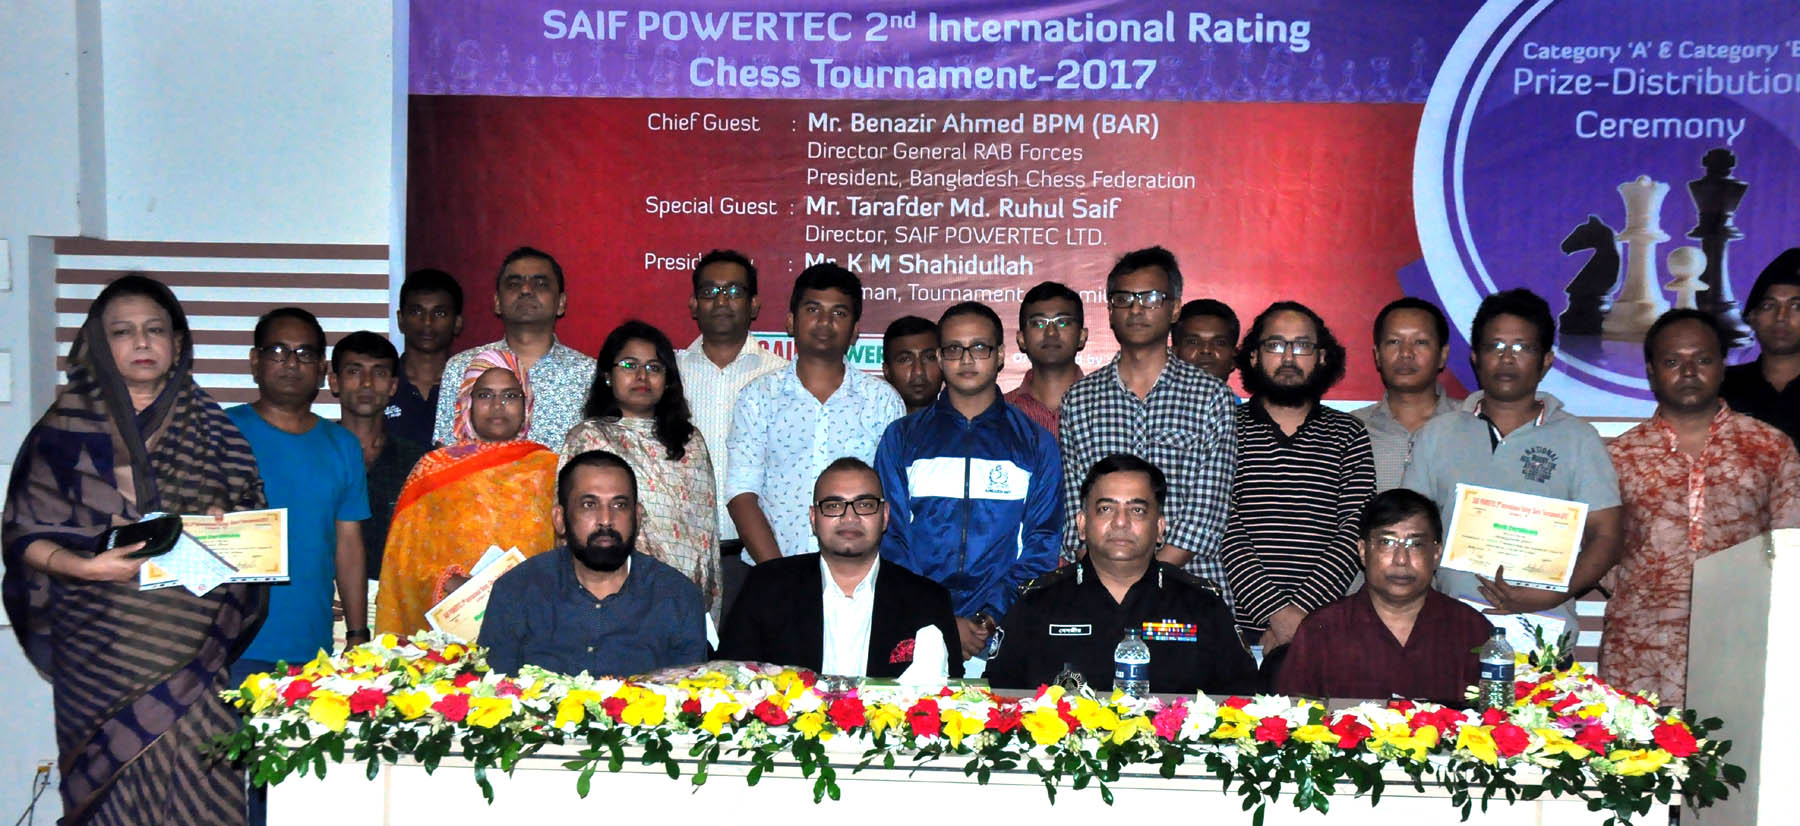 Prize distribution of Rating Chess held